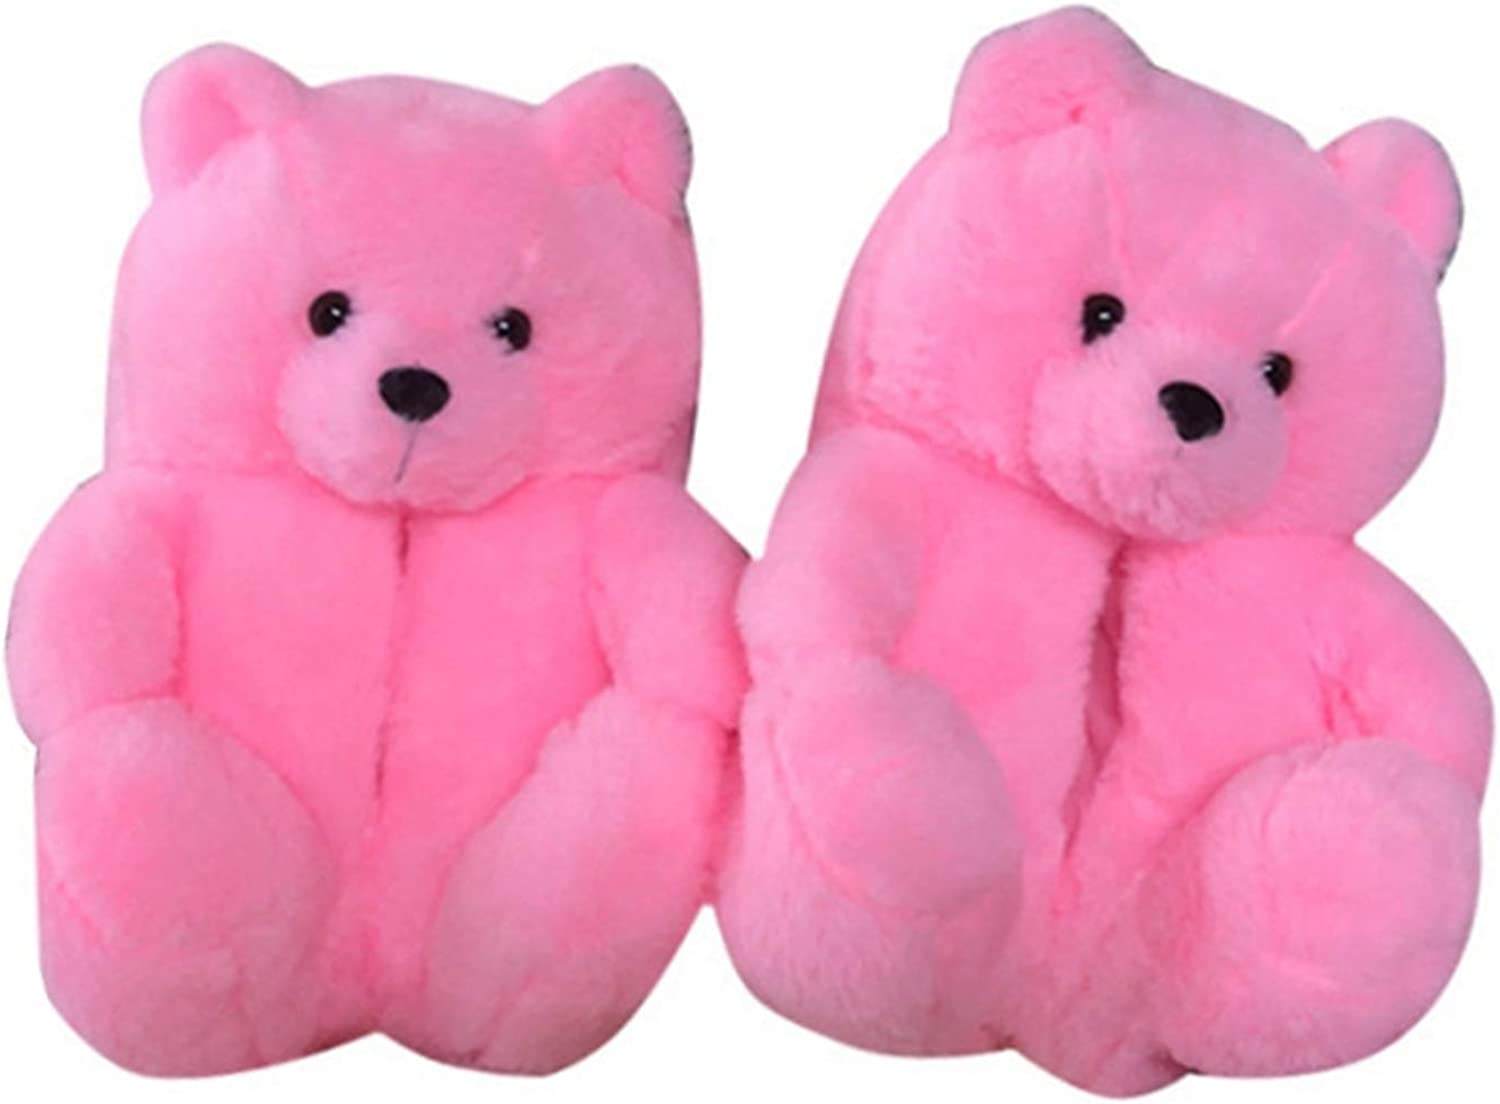 Women's Plush Teddy Bear Slippers, Fuzzy Fluffy Furry Faux Fur Soft House Bedroom Slipper, Anti-Slip Warm Winter Cute Home Indoor Shoes for Girls